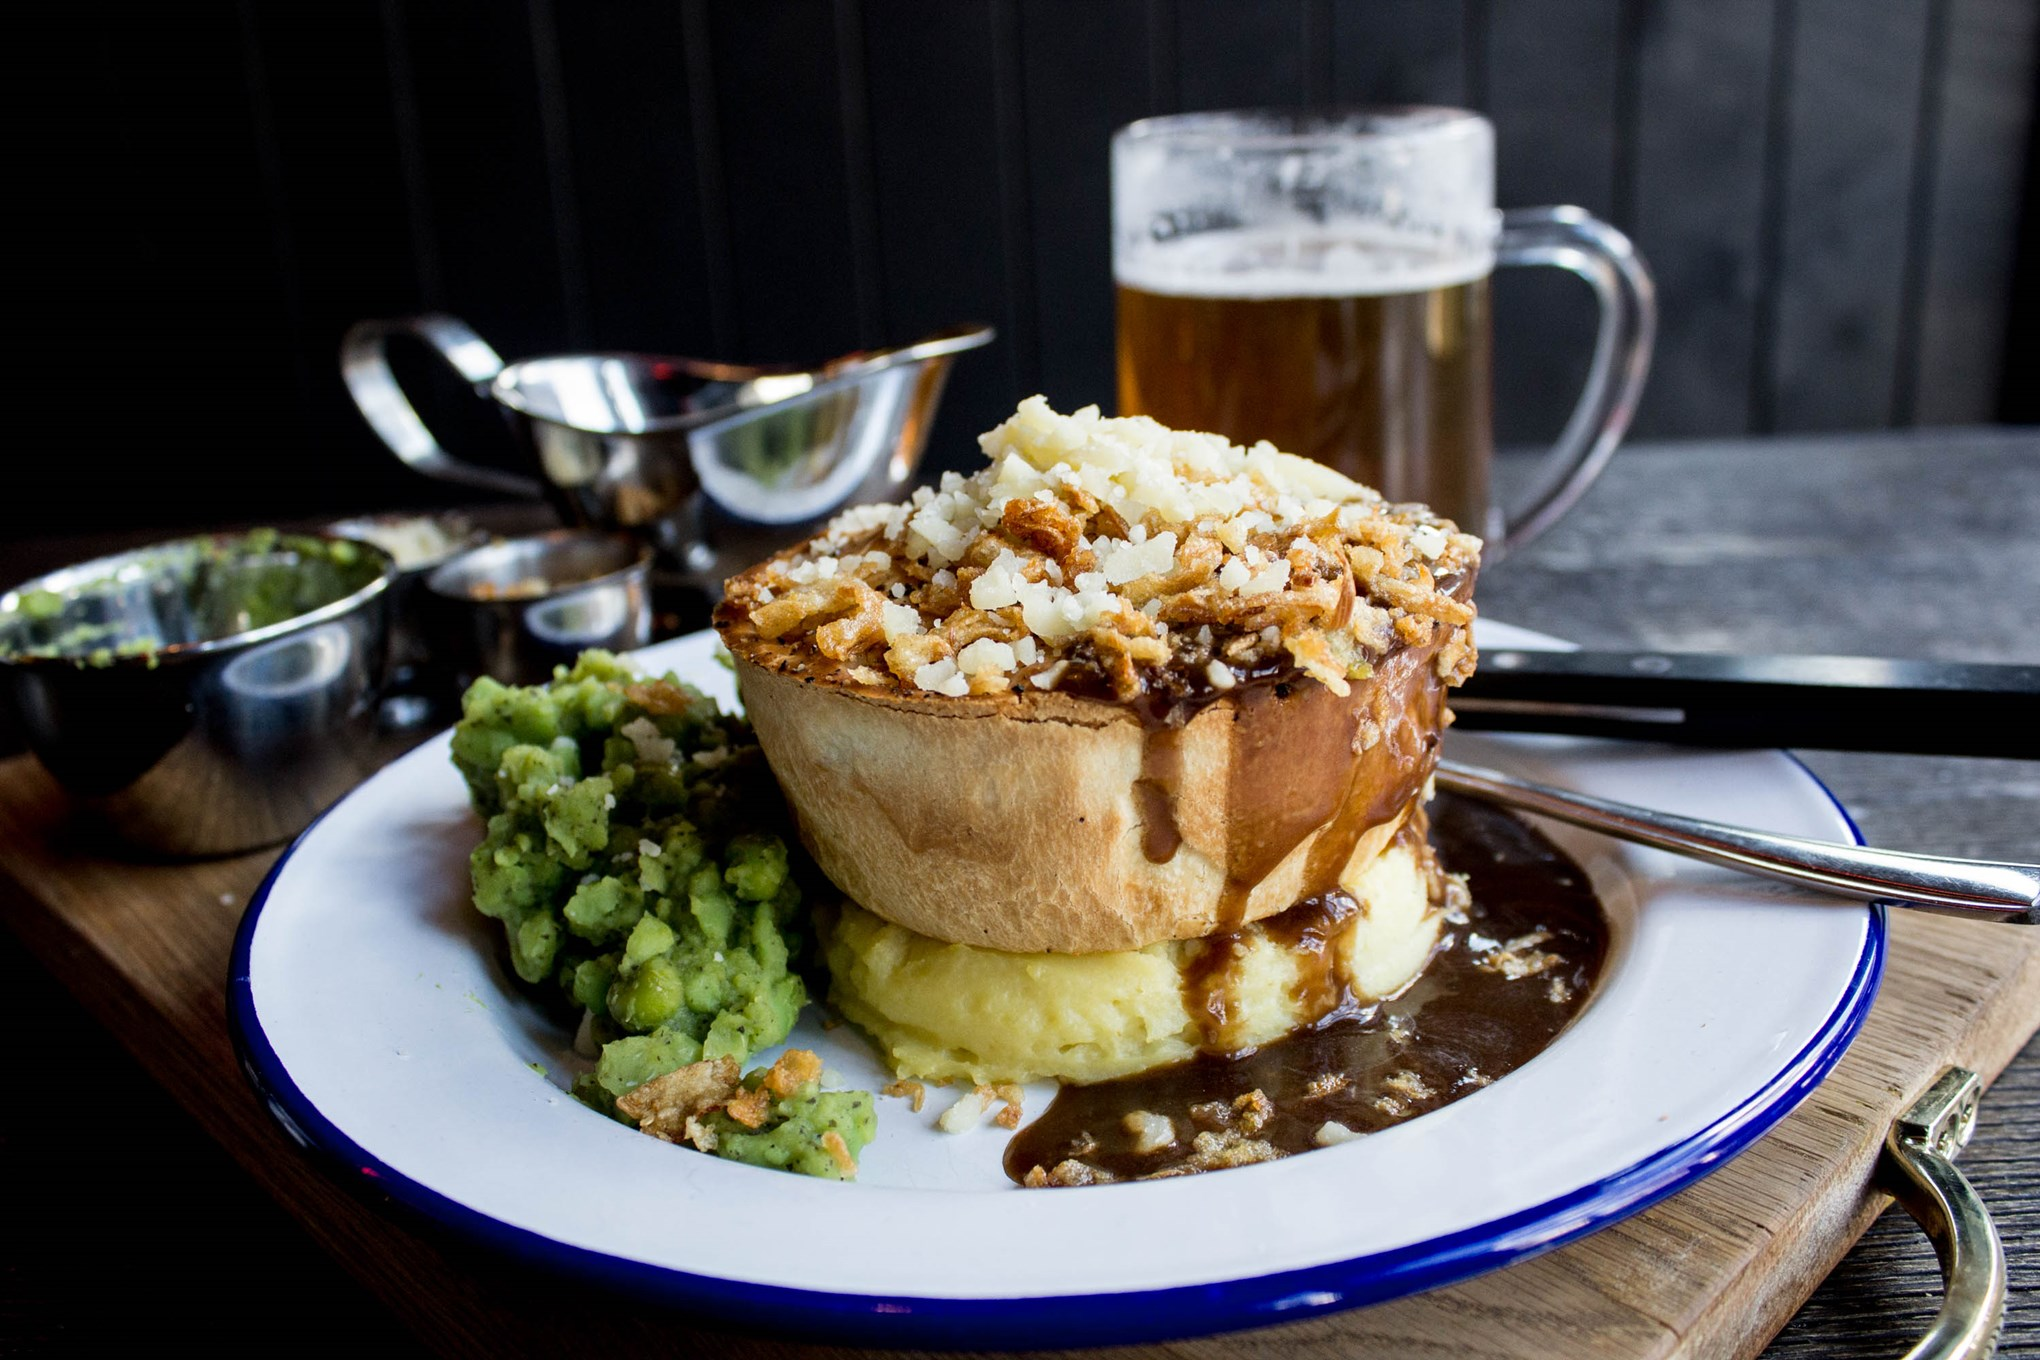 Award-winning Pies